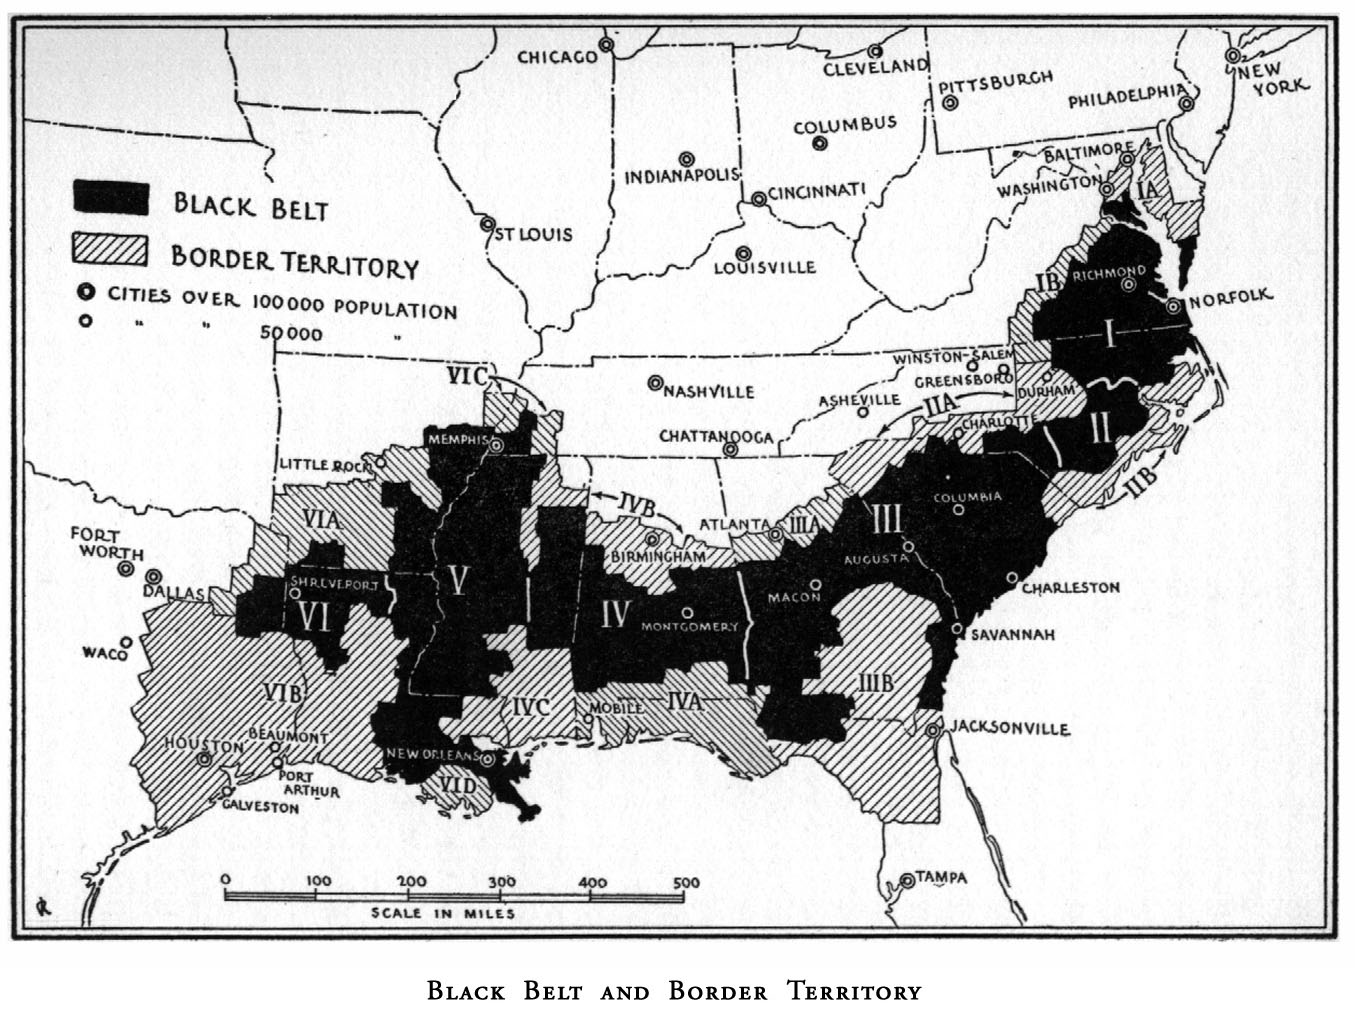 The Black Belt agricultural region, the historical national territory of the African American Nation